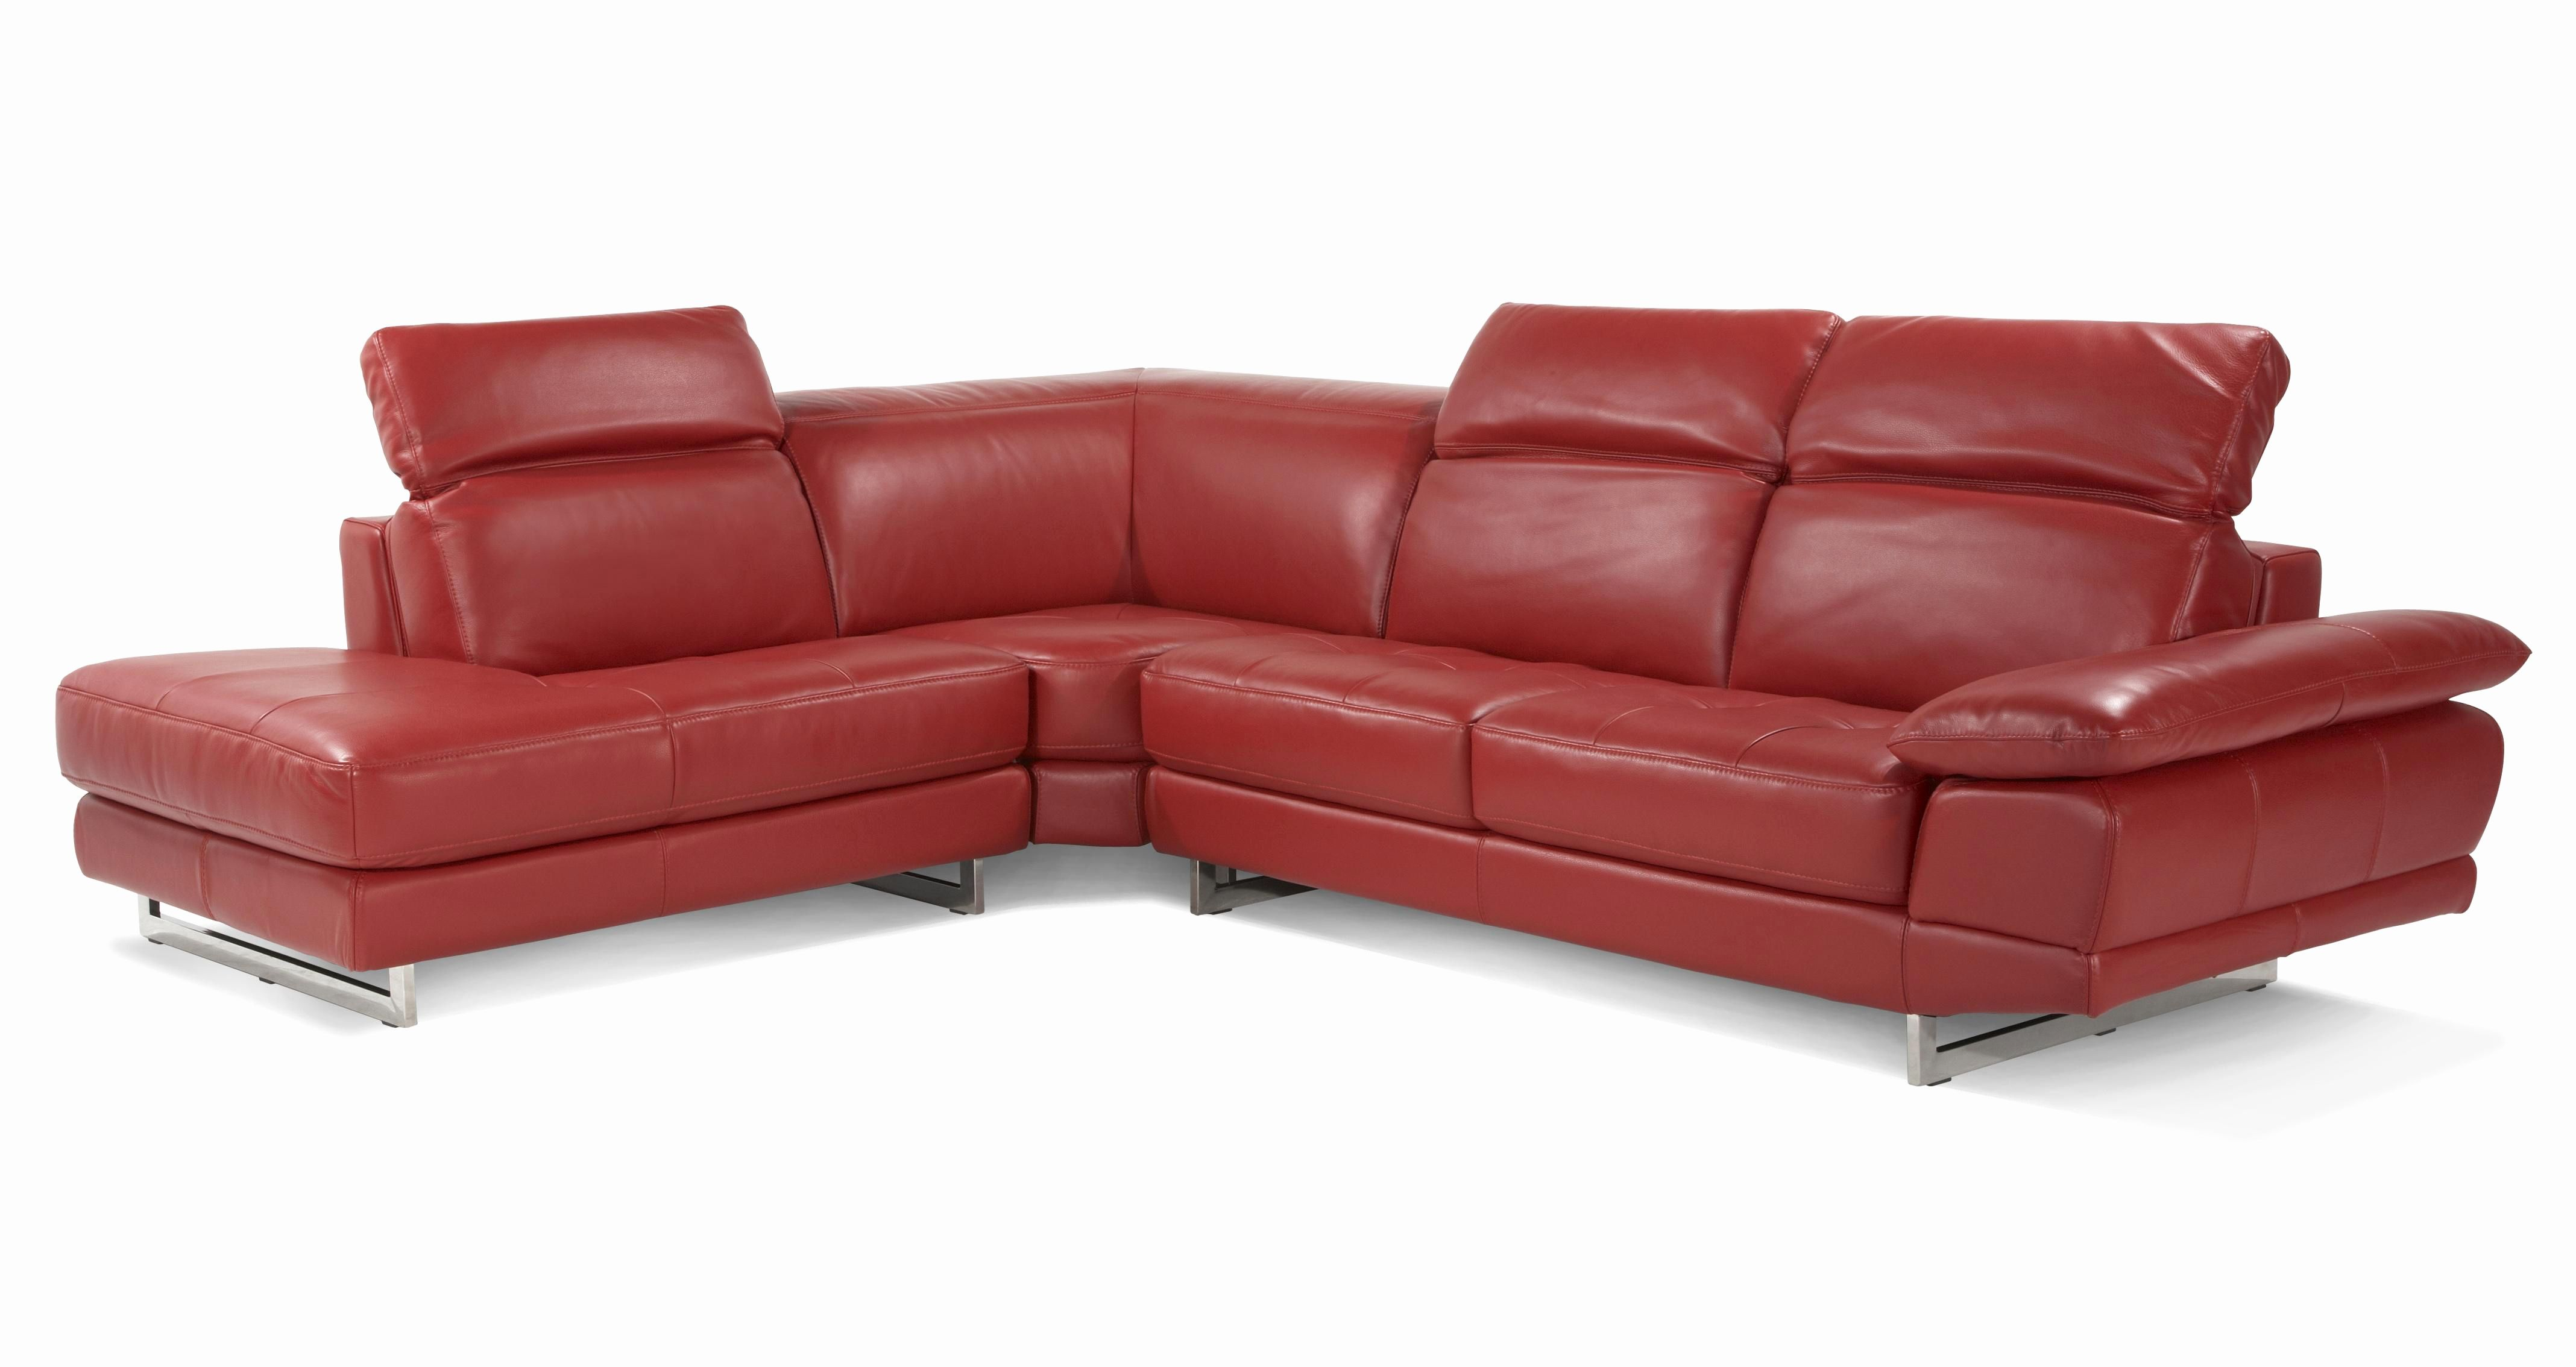 Dfs Corner Leather Sofas Hybrid Leather Corner Sofa Dfs